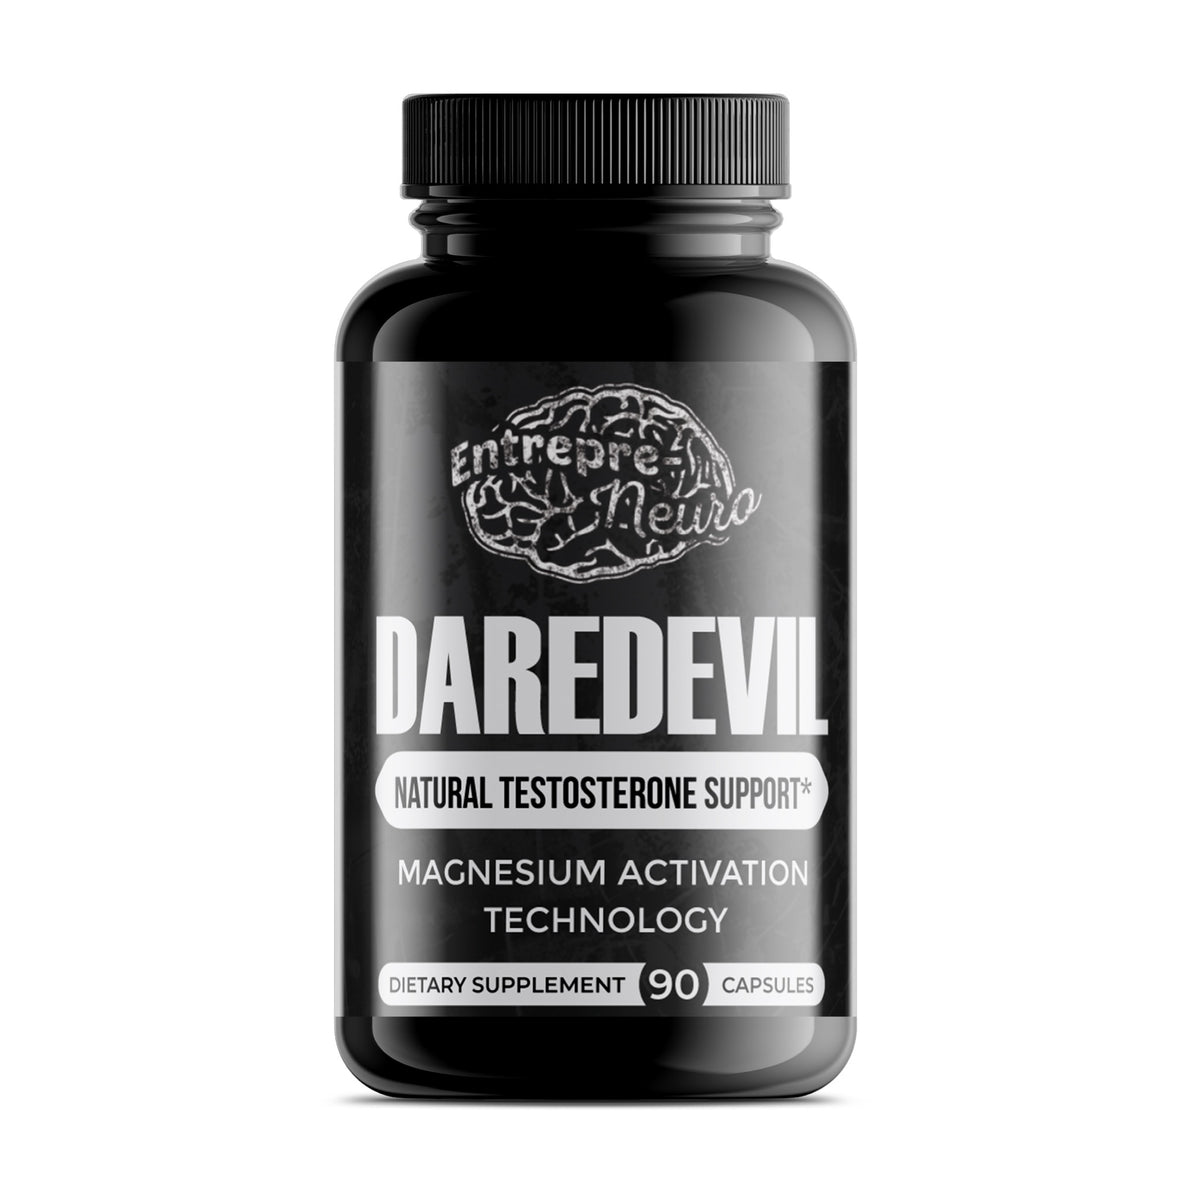 DAREDEVIL - Ultra Test Natural Testosterone Support